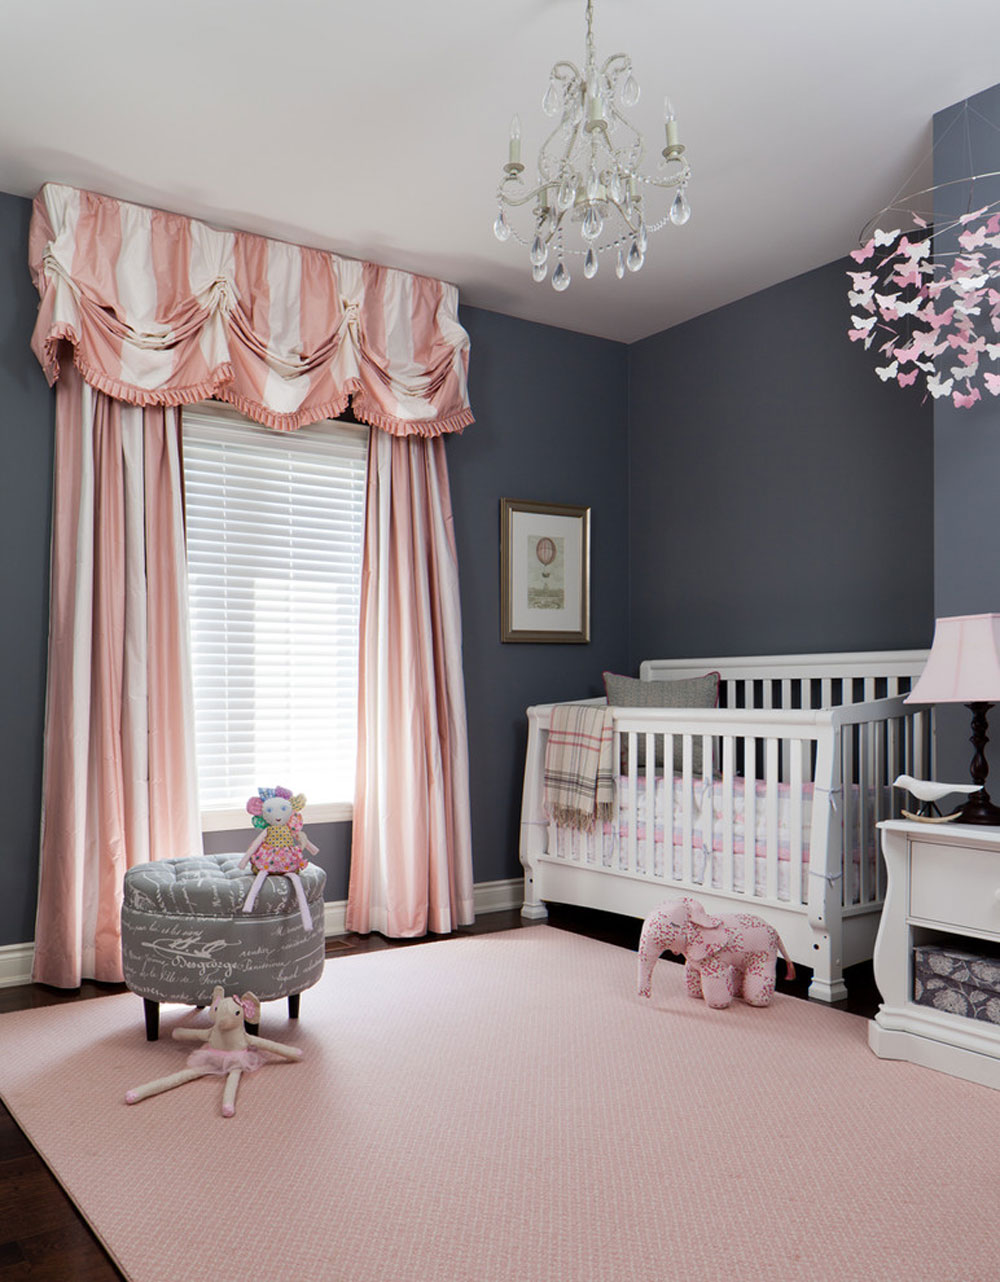 41 color schemes for baby nurseries for your baby room